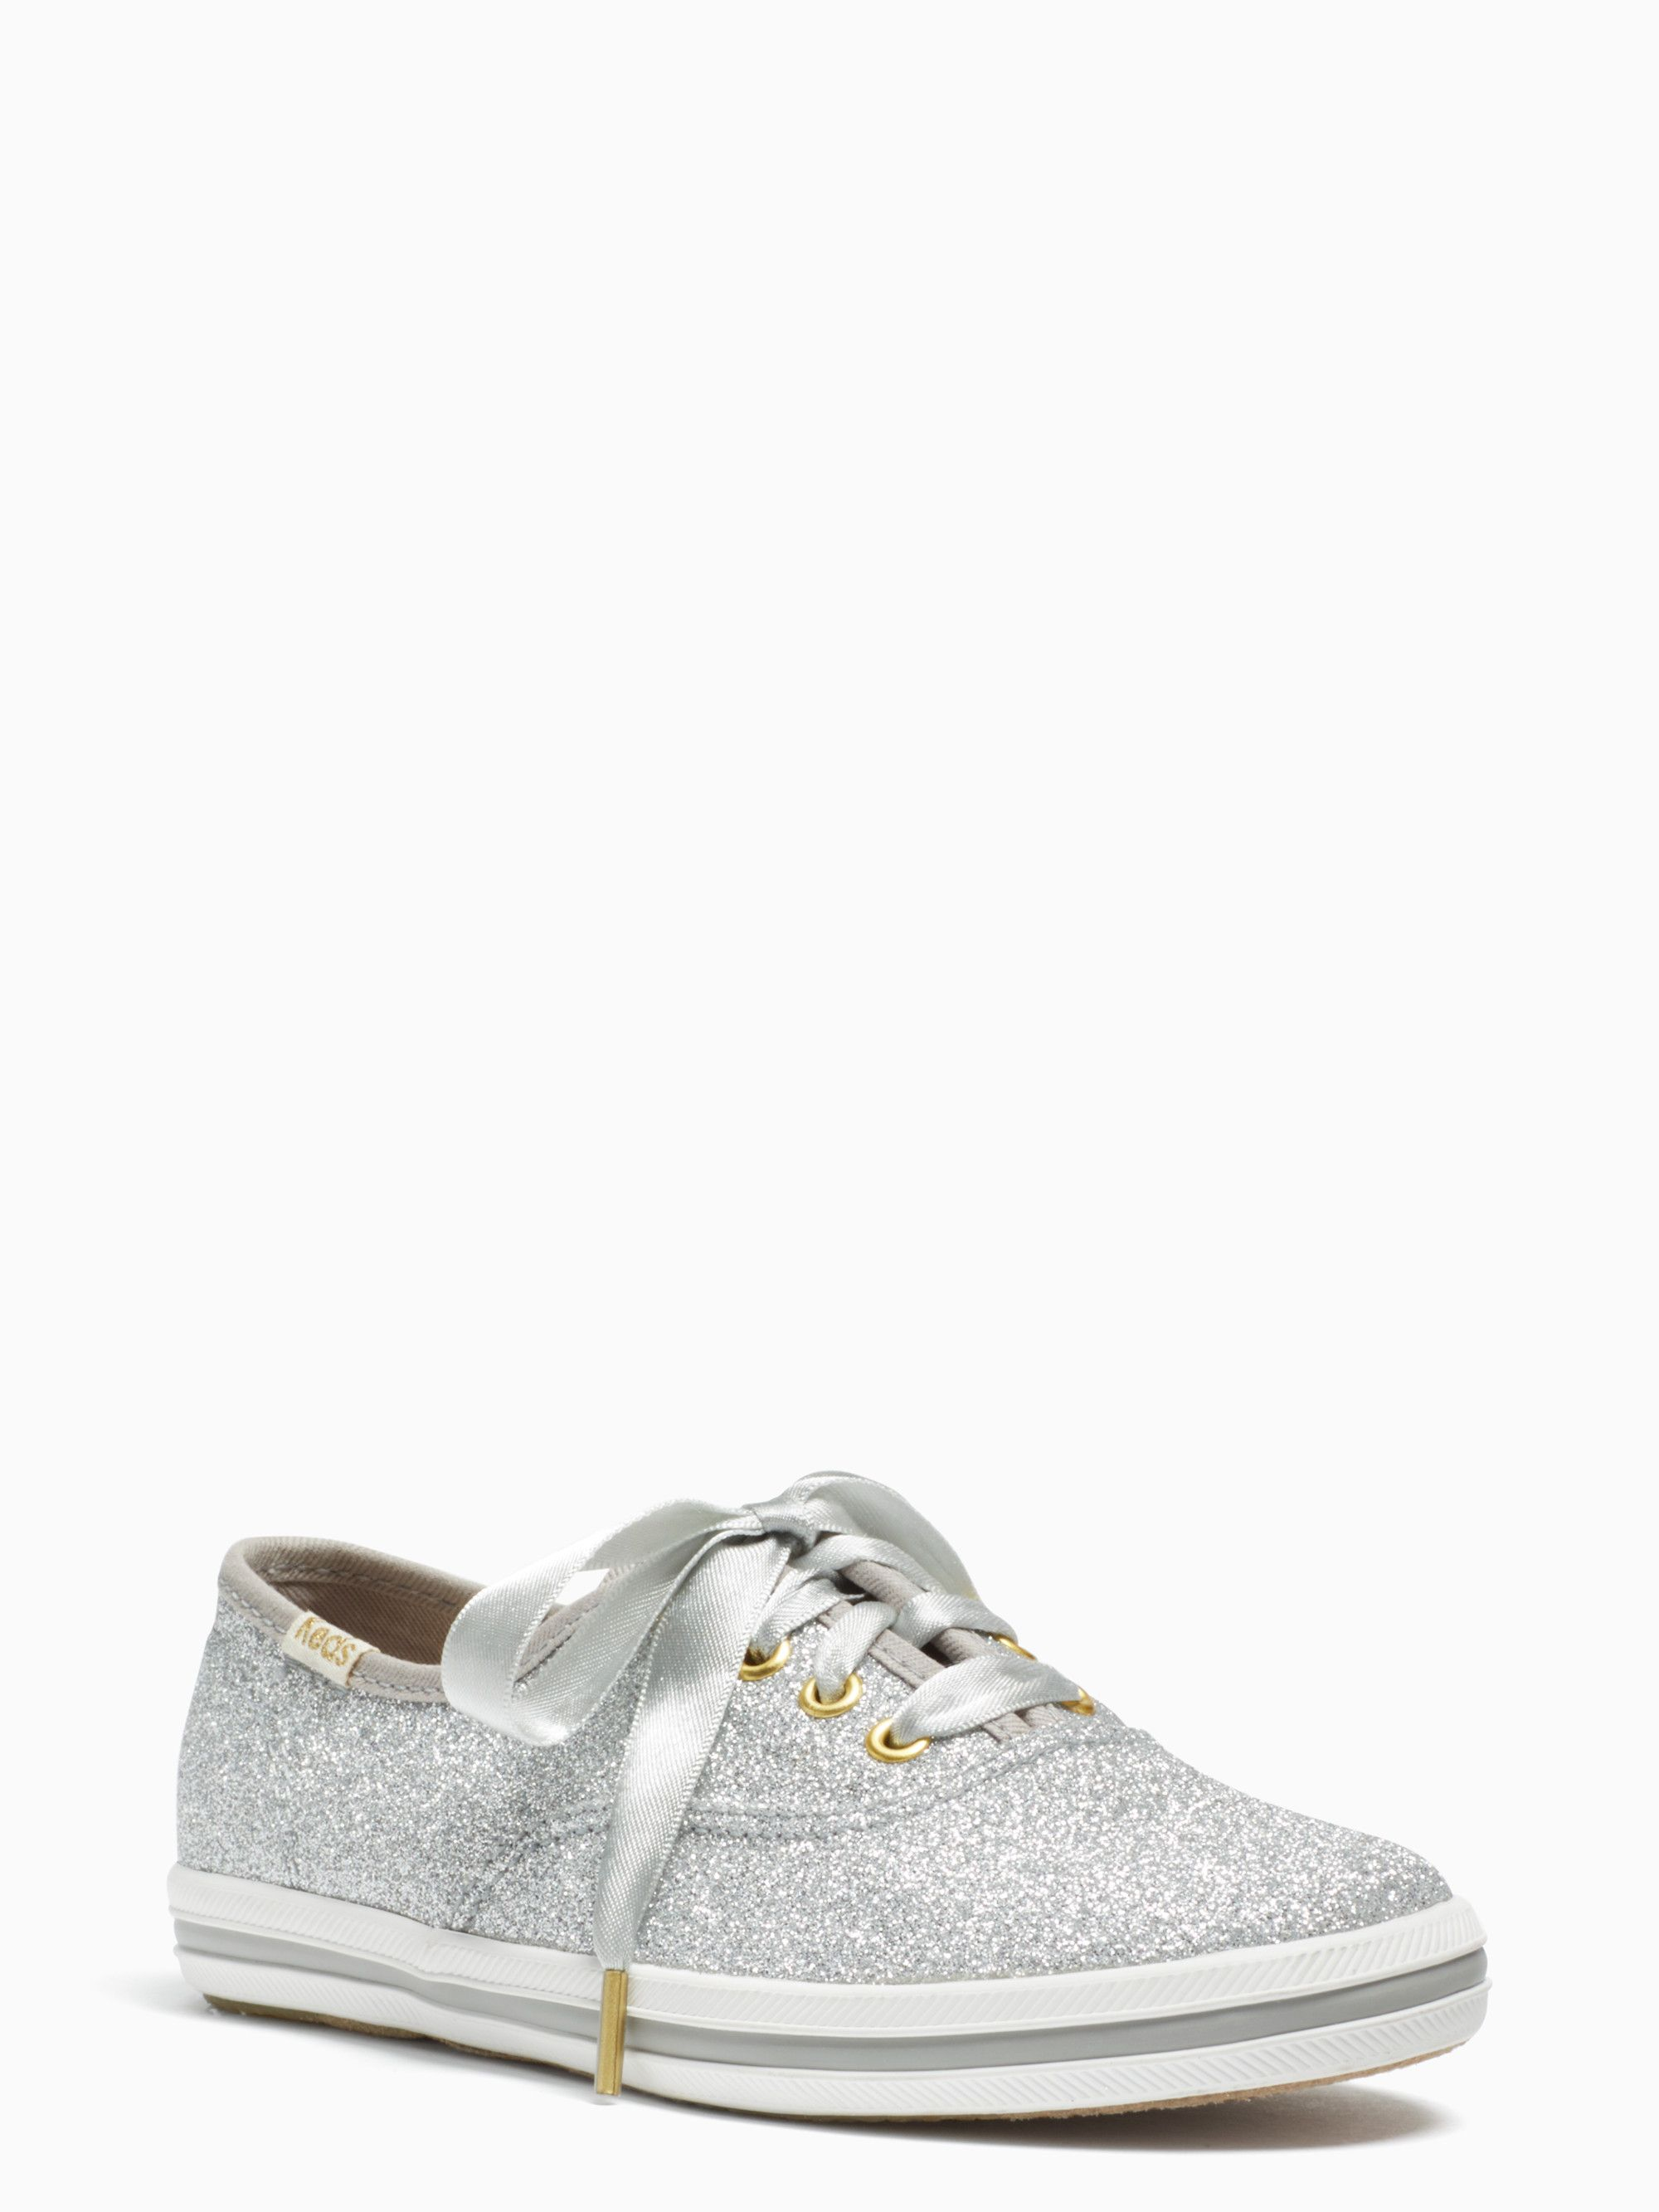 49ad50c2dd82a9 Keds kids x kate spade new york champion glitter youth sneakers ...